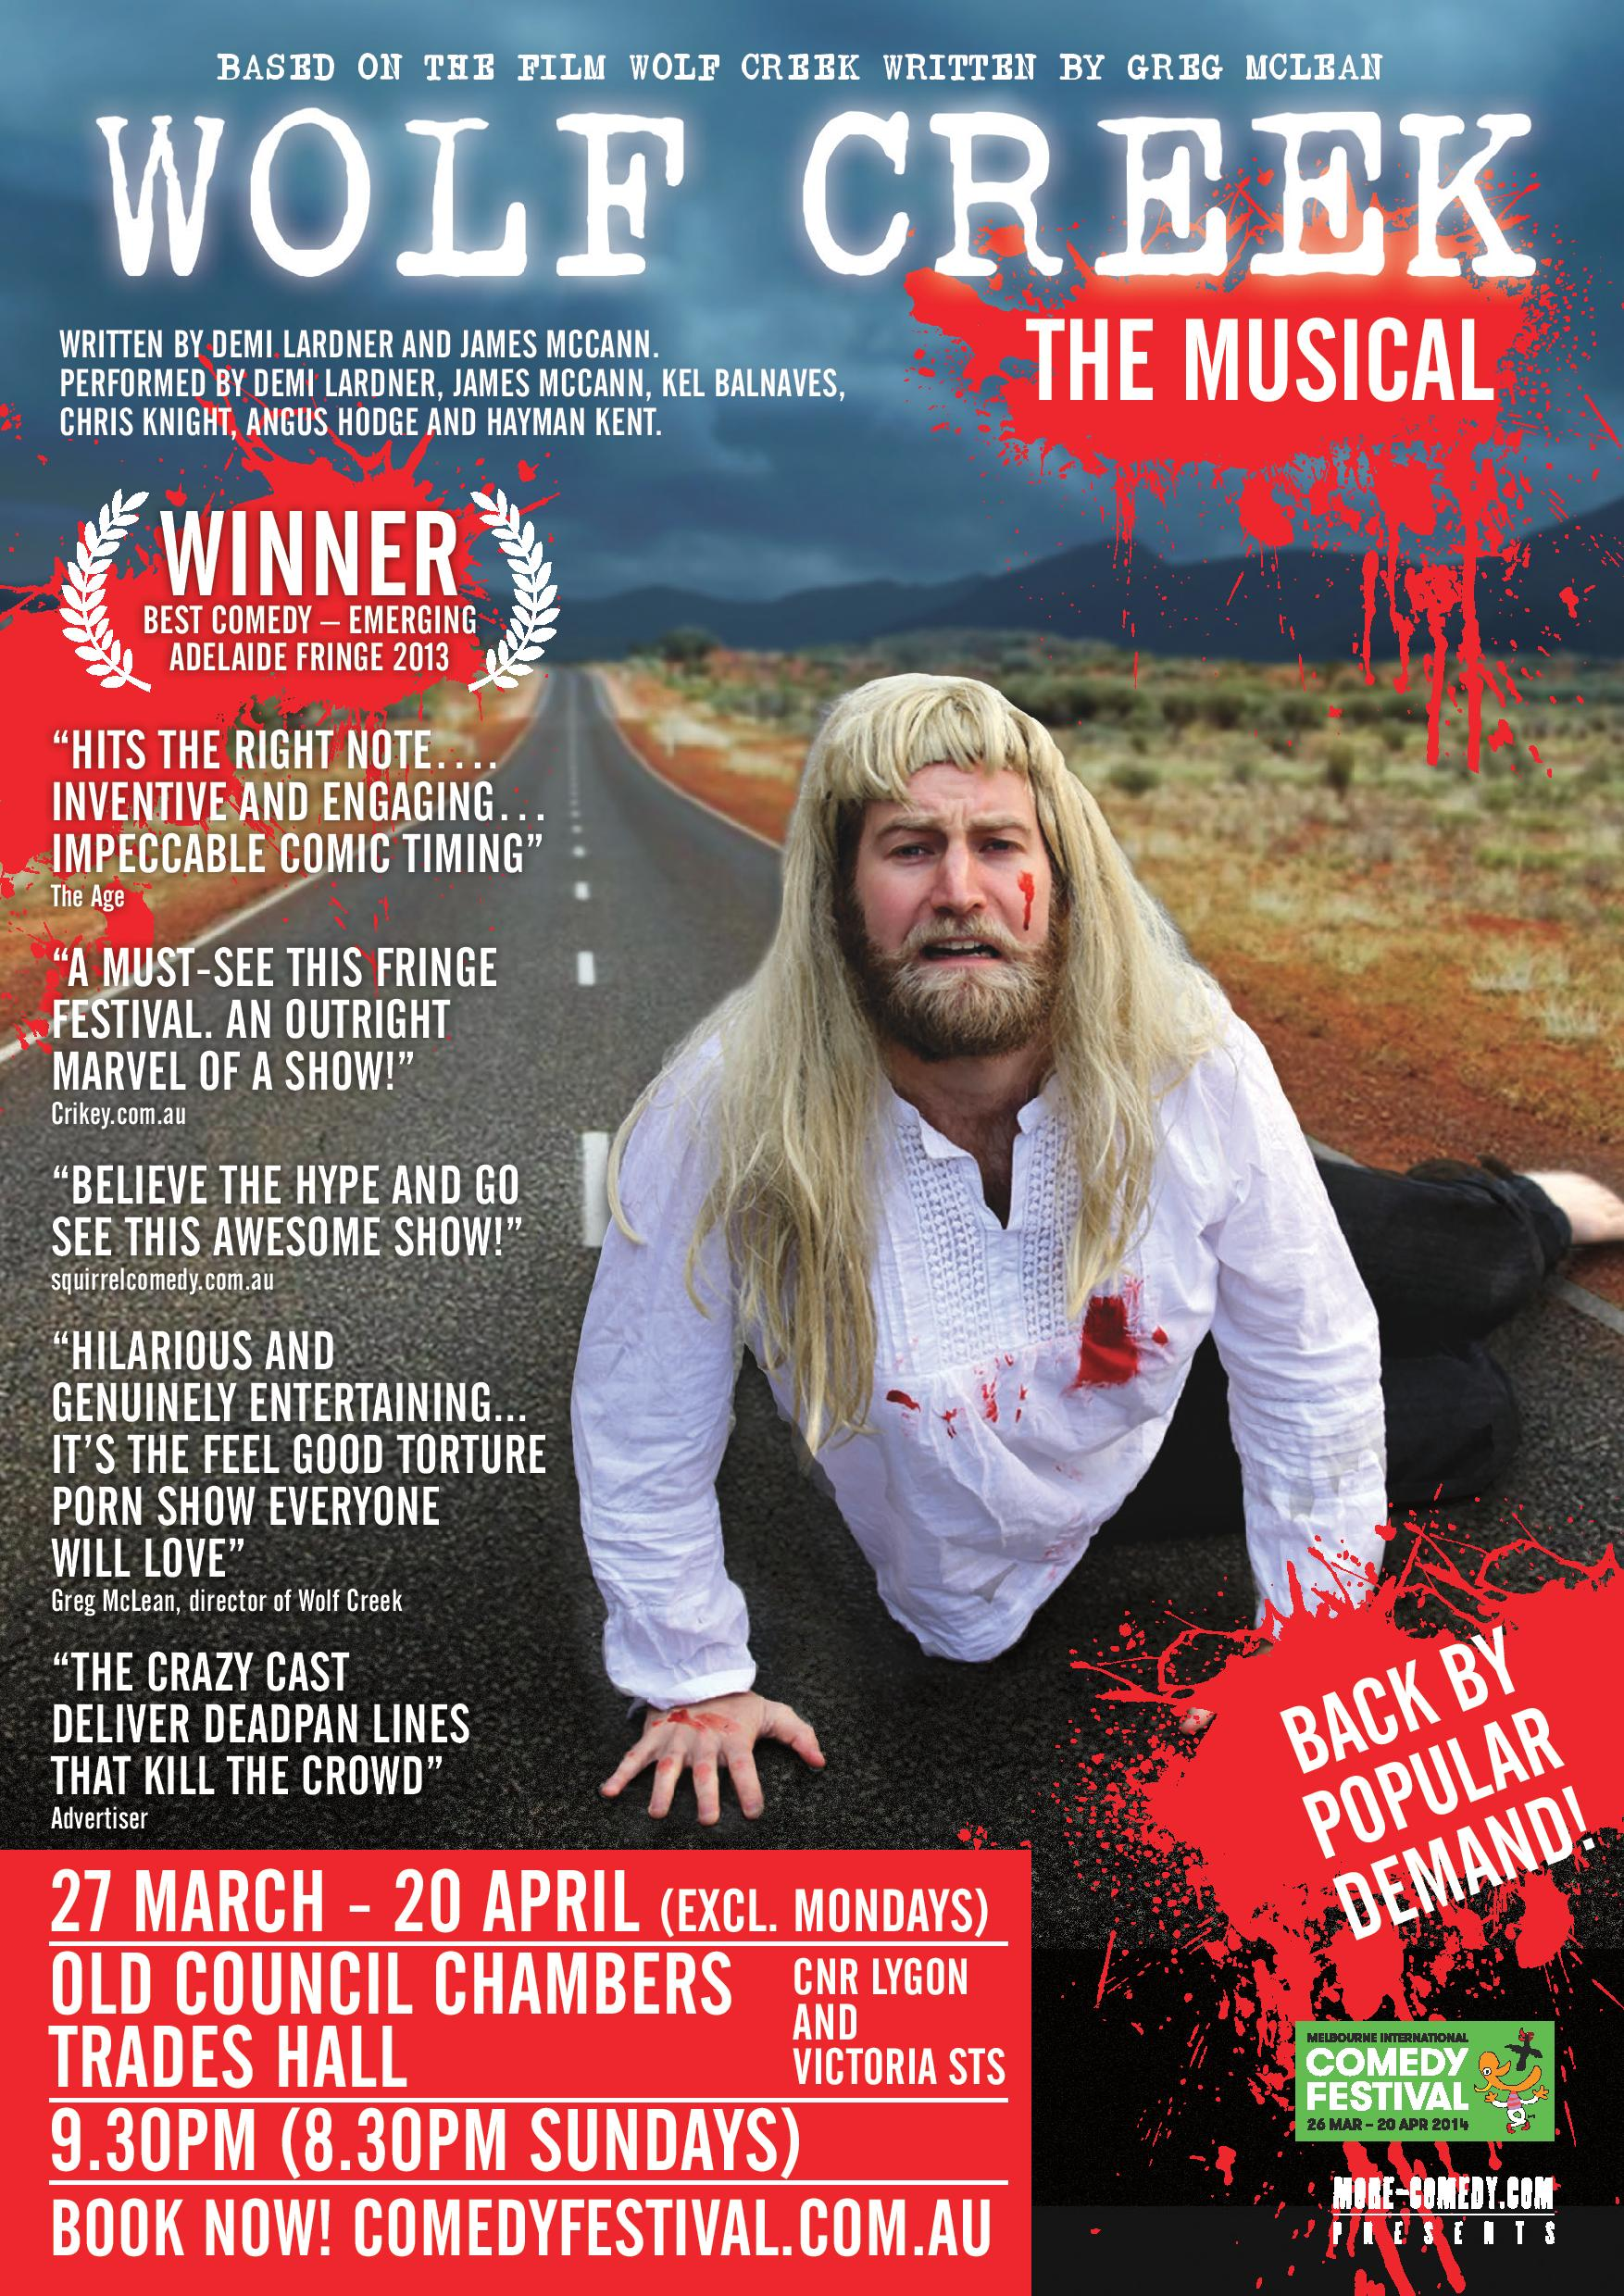 WolfCreek_TheMusical_MICF2014_A3 final.pdf-page-001 (1).jpg